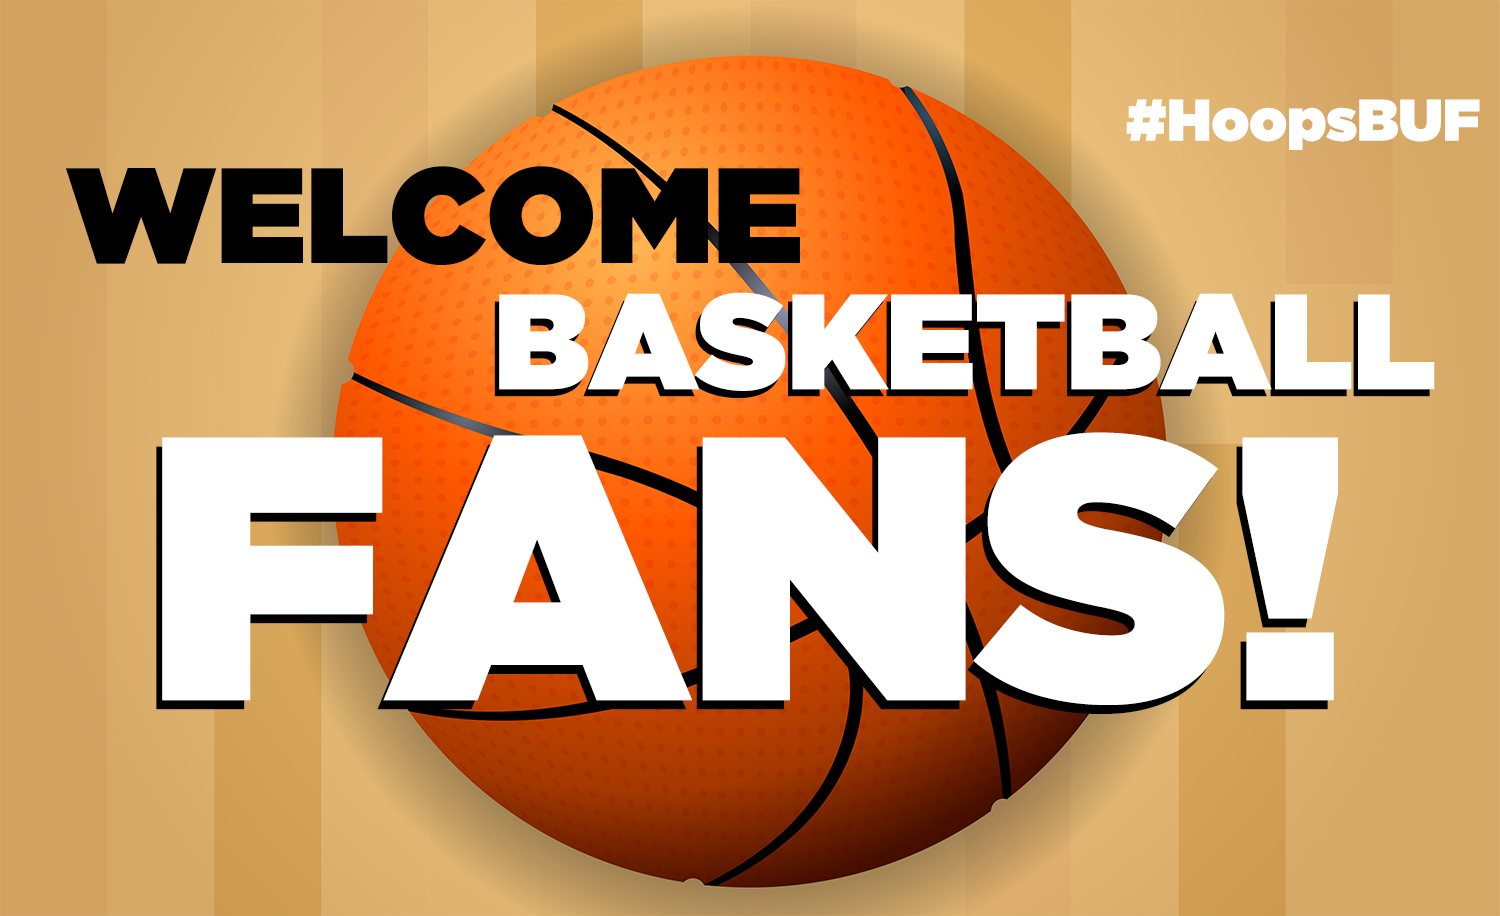 Welcome Basketball Fans_Blog Post Image2